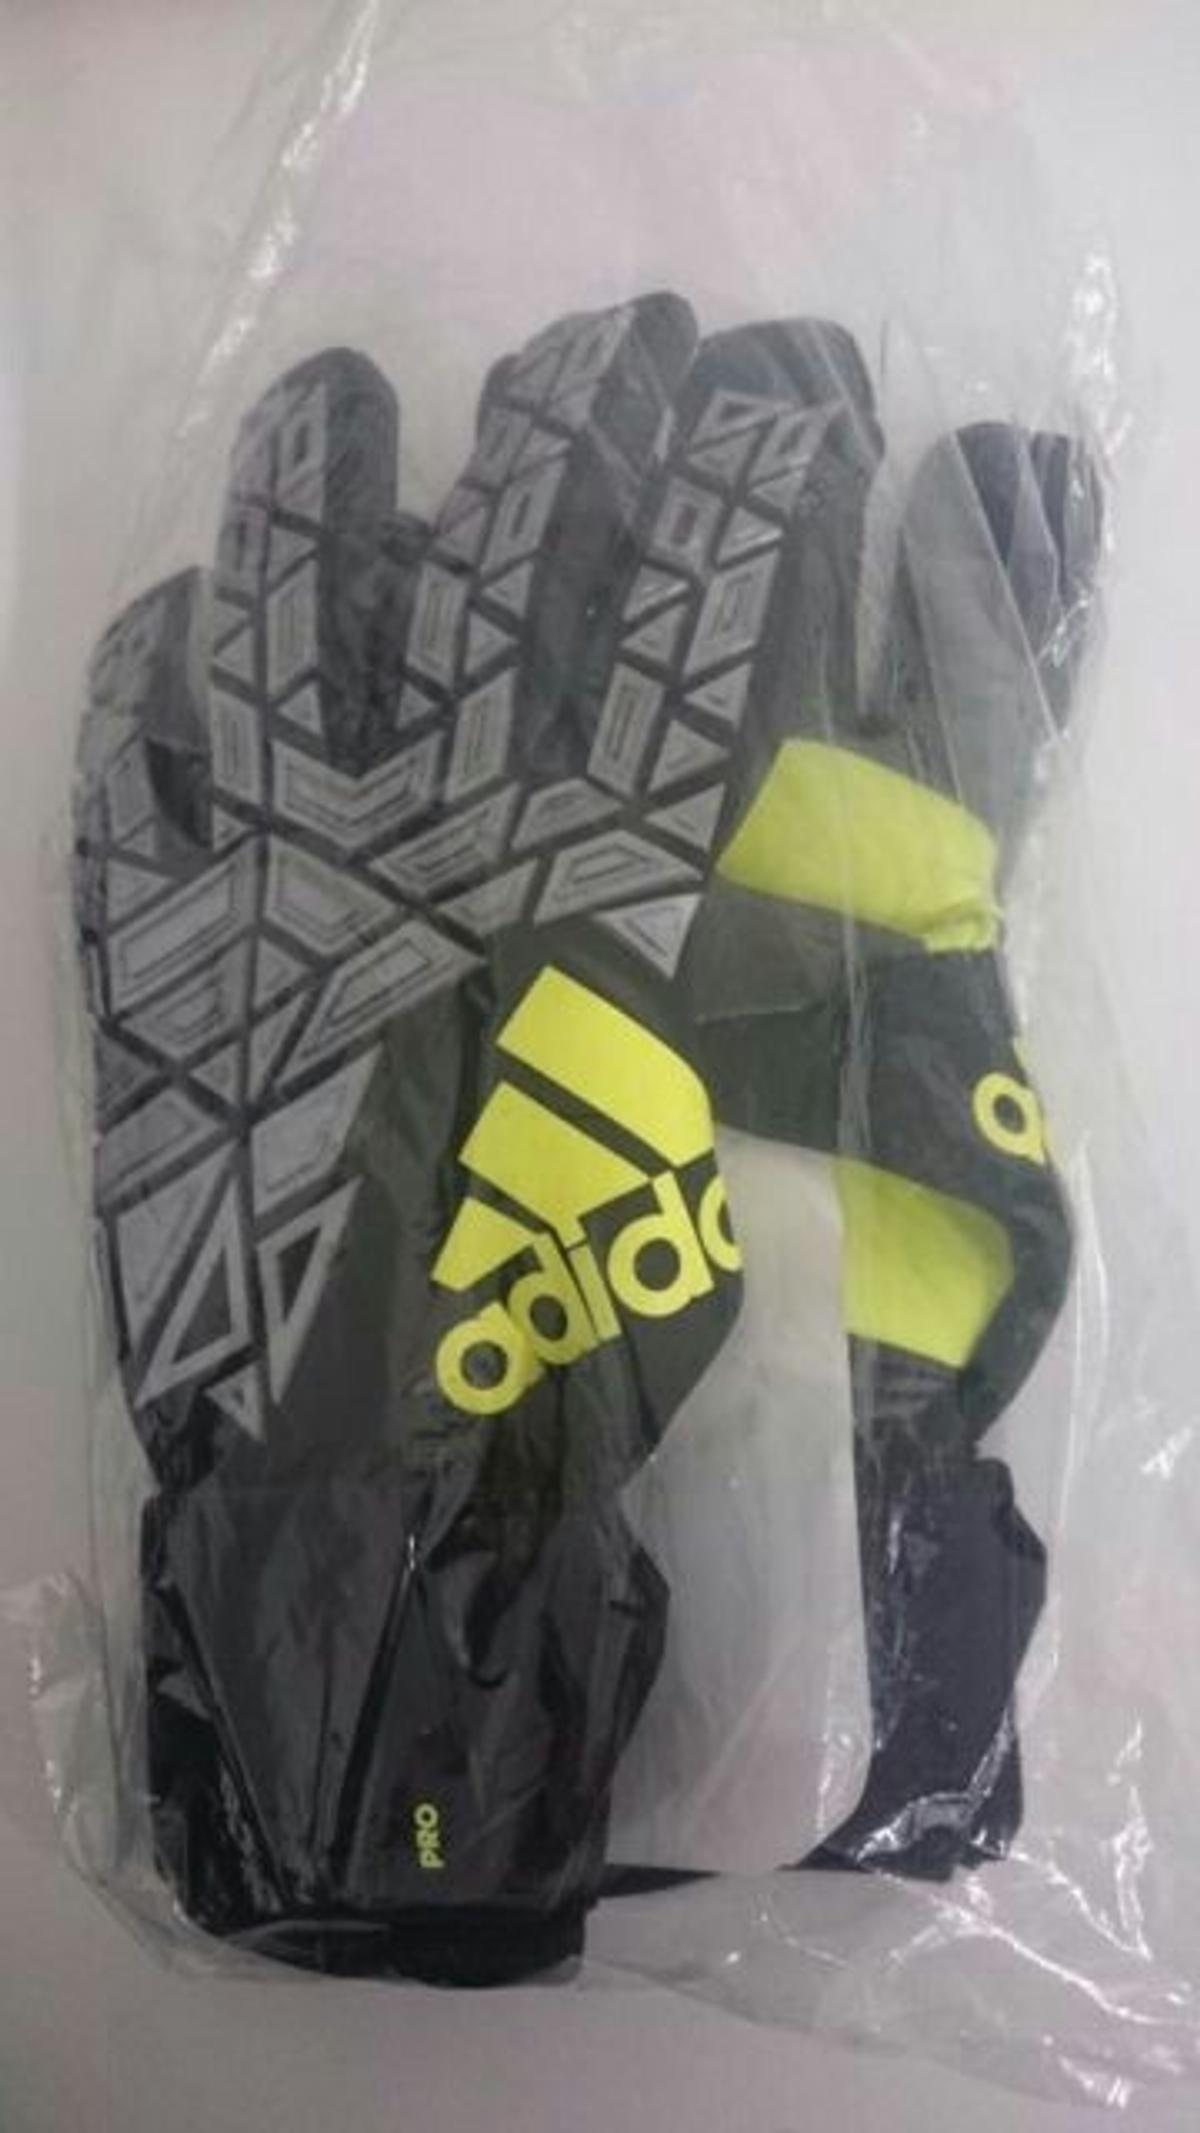 best service 99e93 36729 Adidas Ace Trans Pro Goalkeeper Gloves Size 9 - Images ...